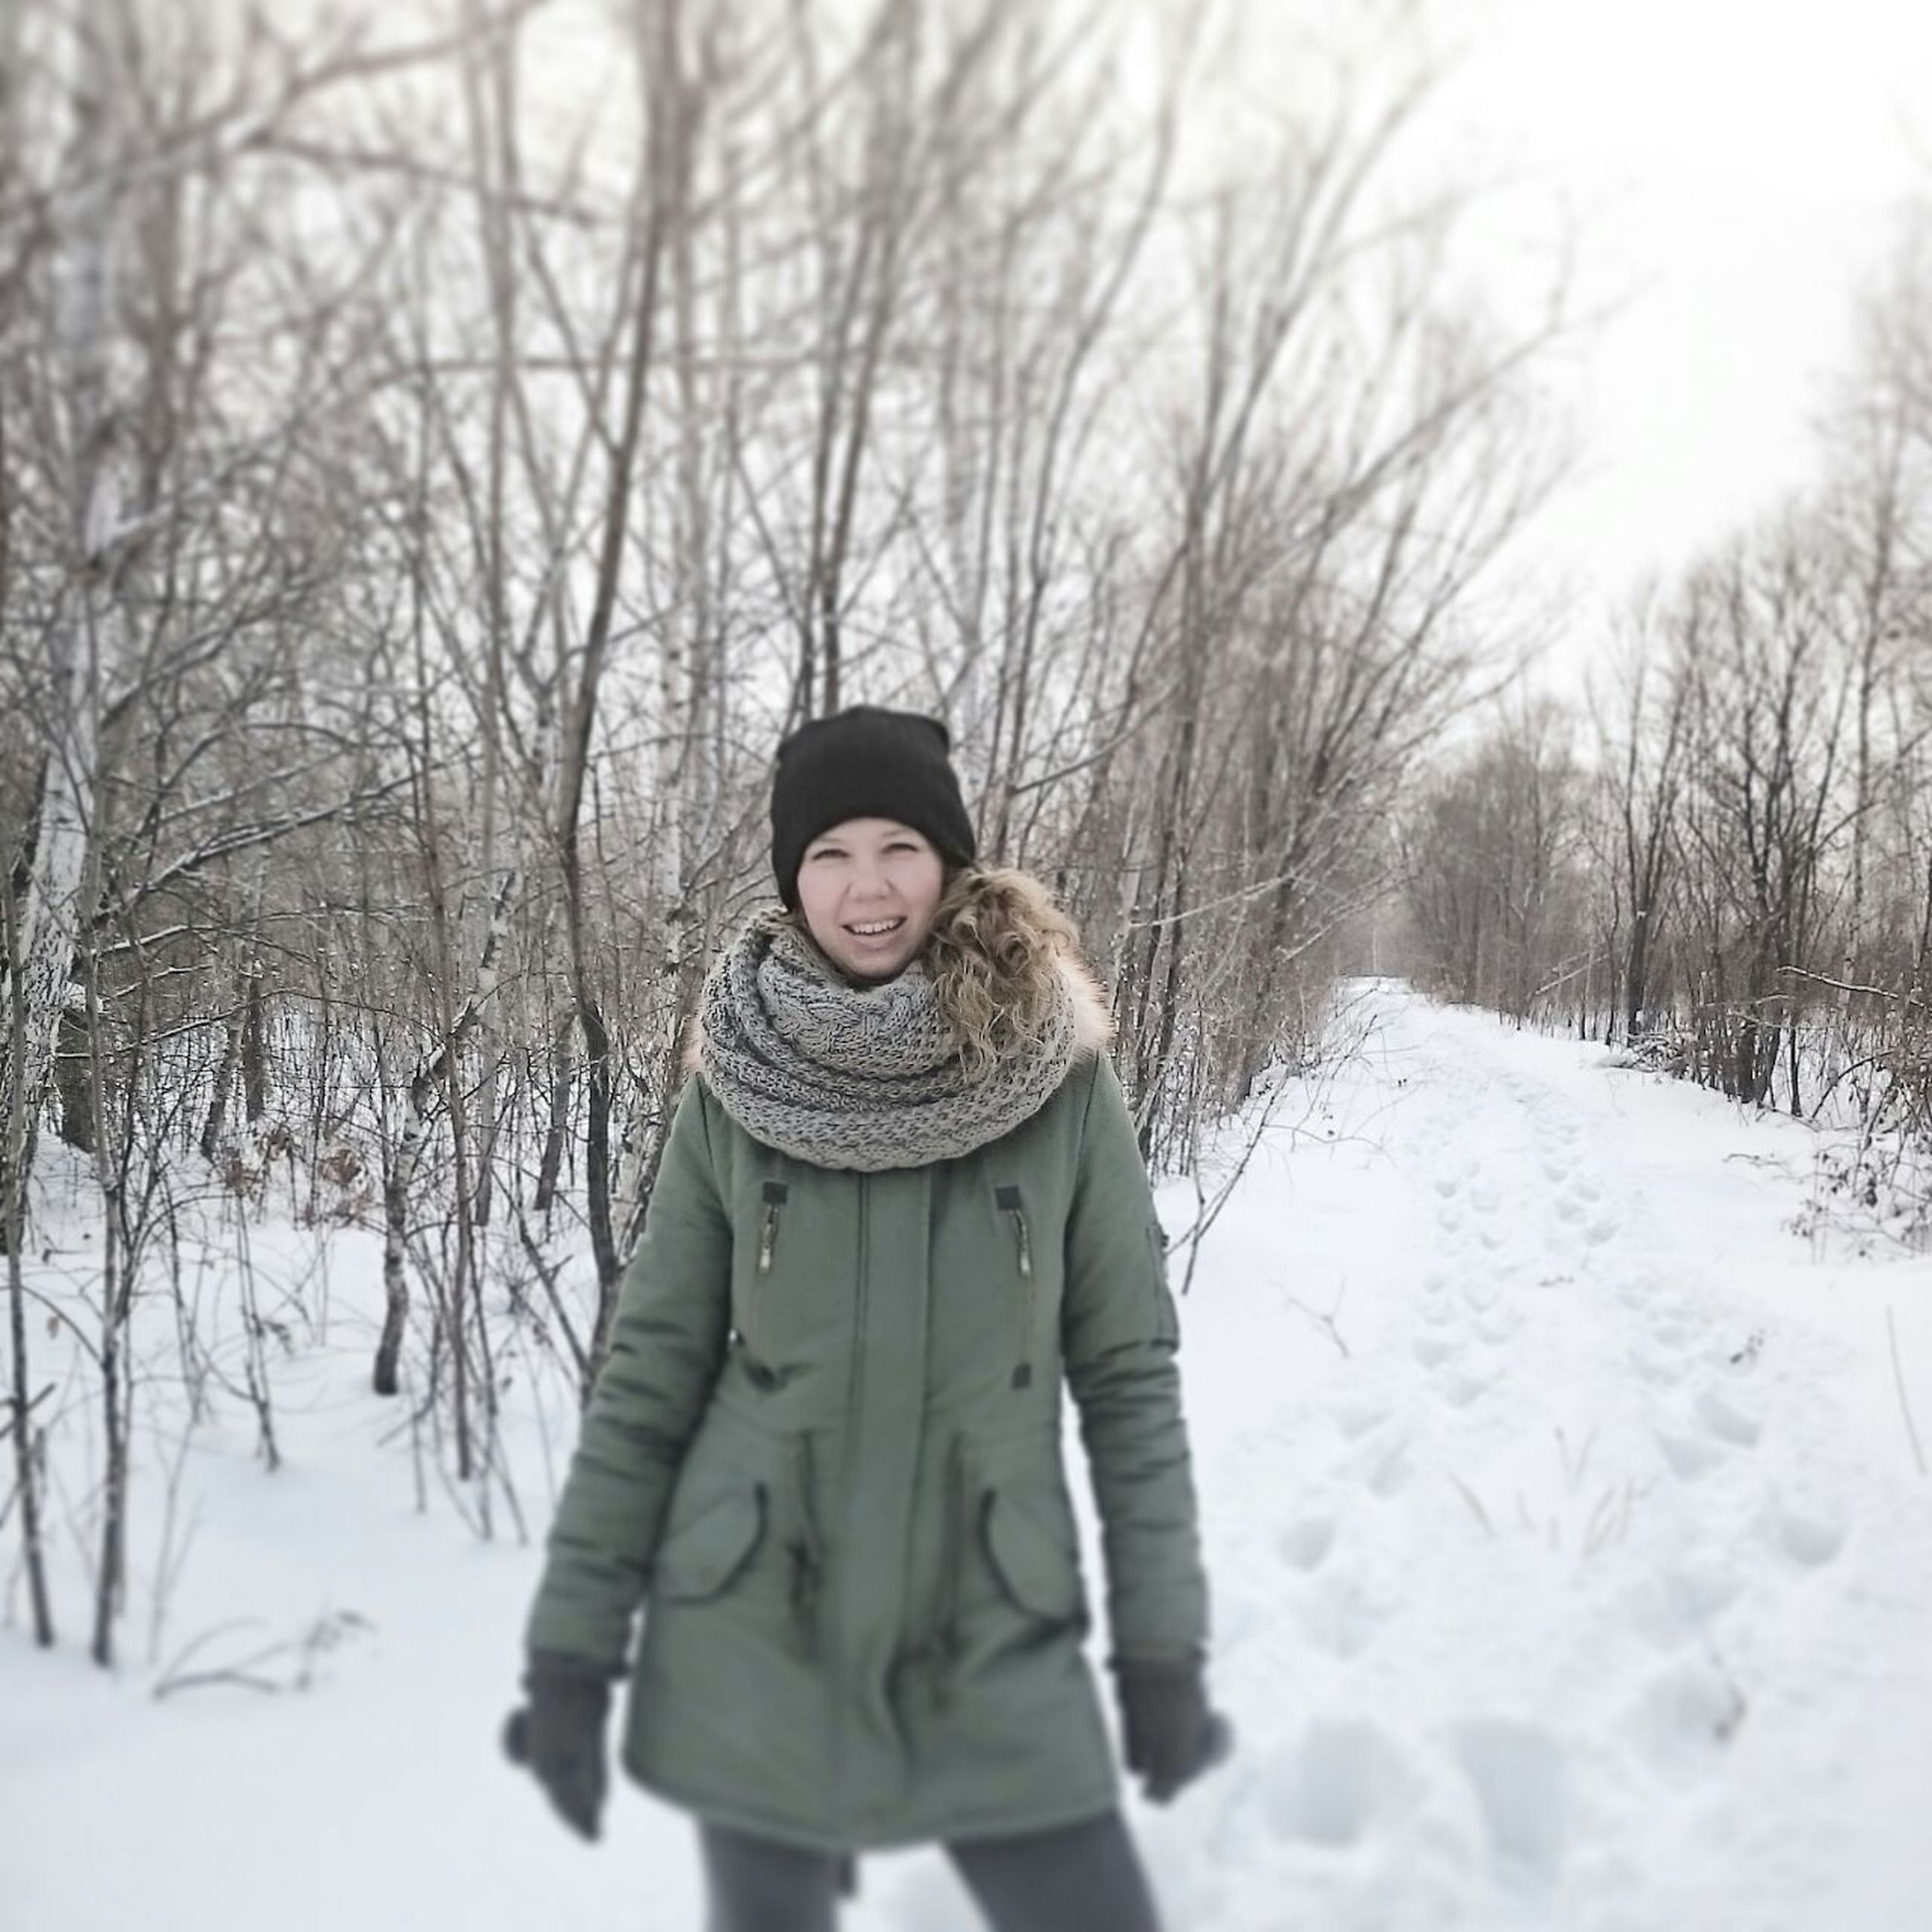 winter, snow, cold temperature, season, warm clothing, lifestyles, weather, leisure activity, tree, looking at camera, front view, person, portrait, standing, covering, bare tree, casual clothing, white color